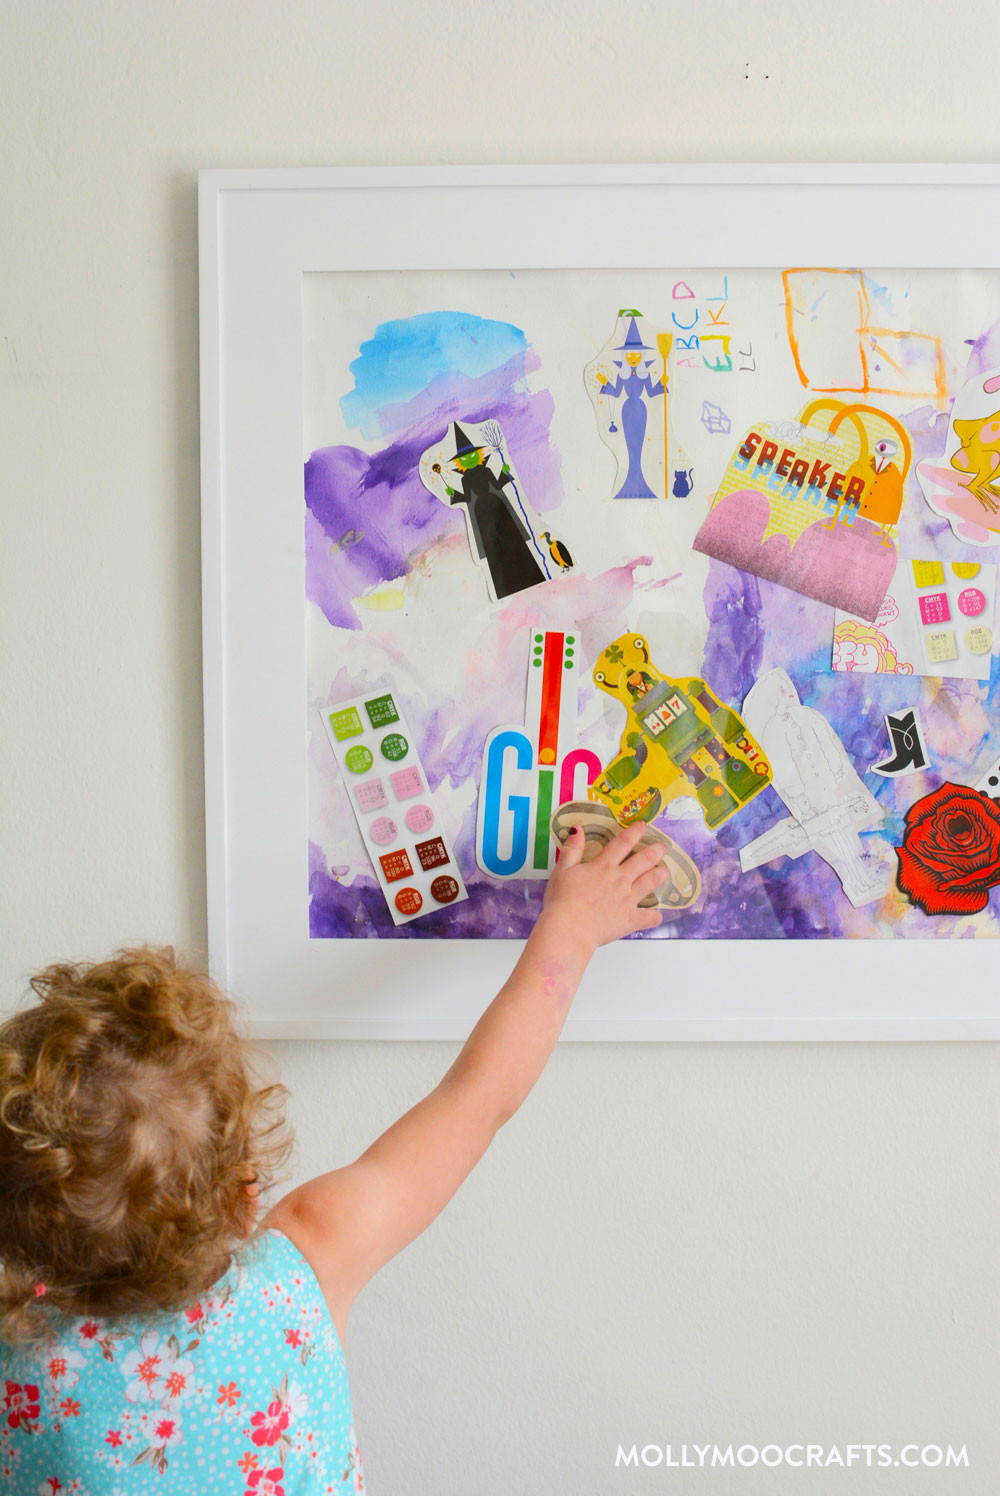 Best ideas about Art Projects Kids . Save or Pin MollyMooCrafts Fun Art Project For Kids Mixed Media Collage Now.